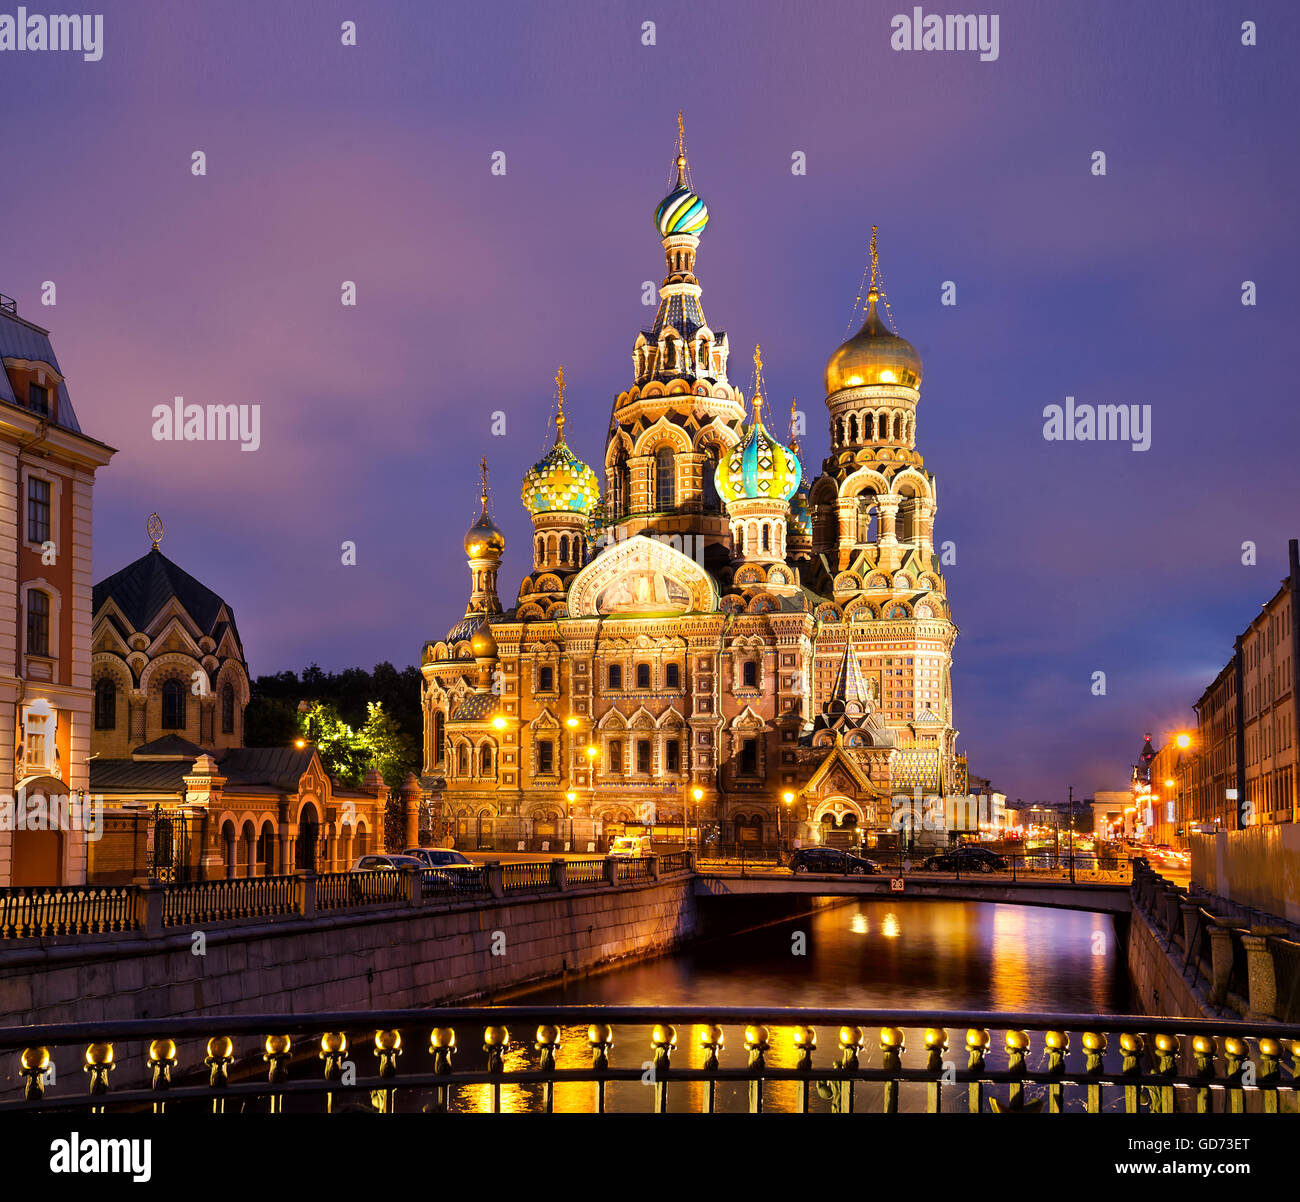 Cathedral of Savior on Spilled Blood in St Petersburg, Russia. - Stock Image